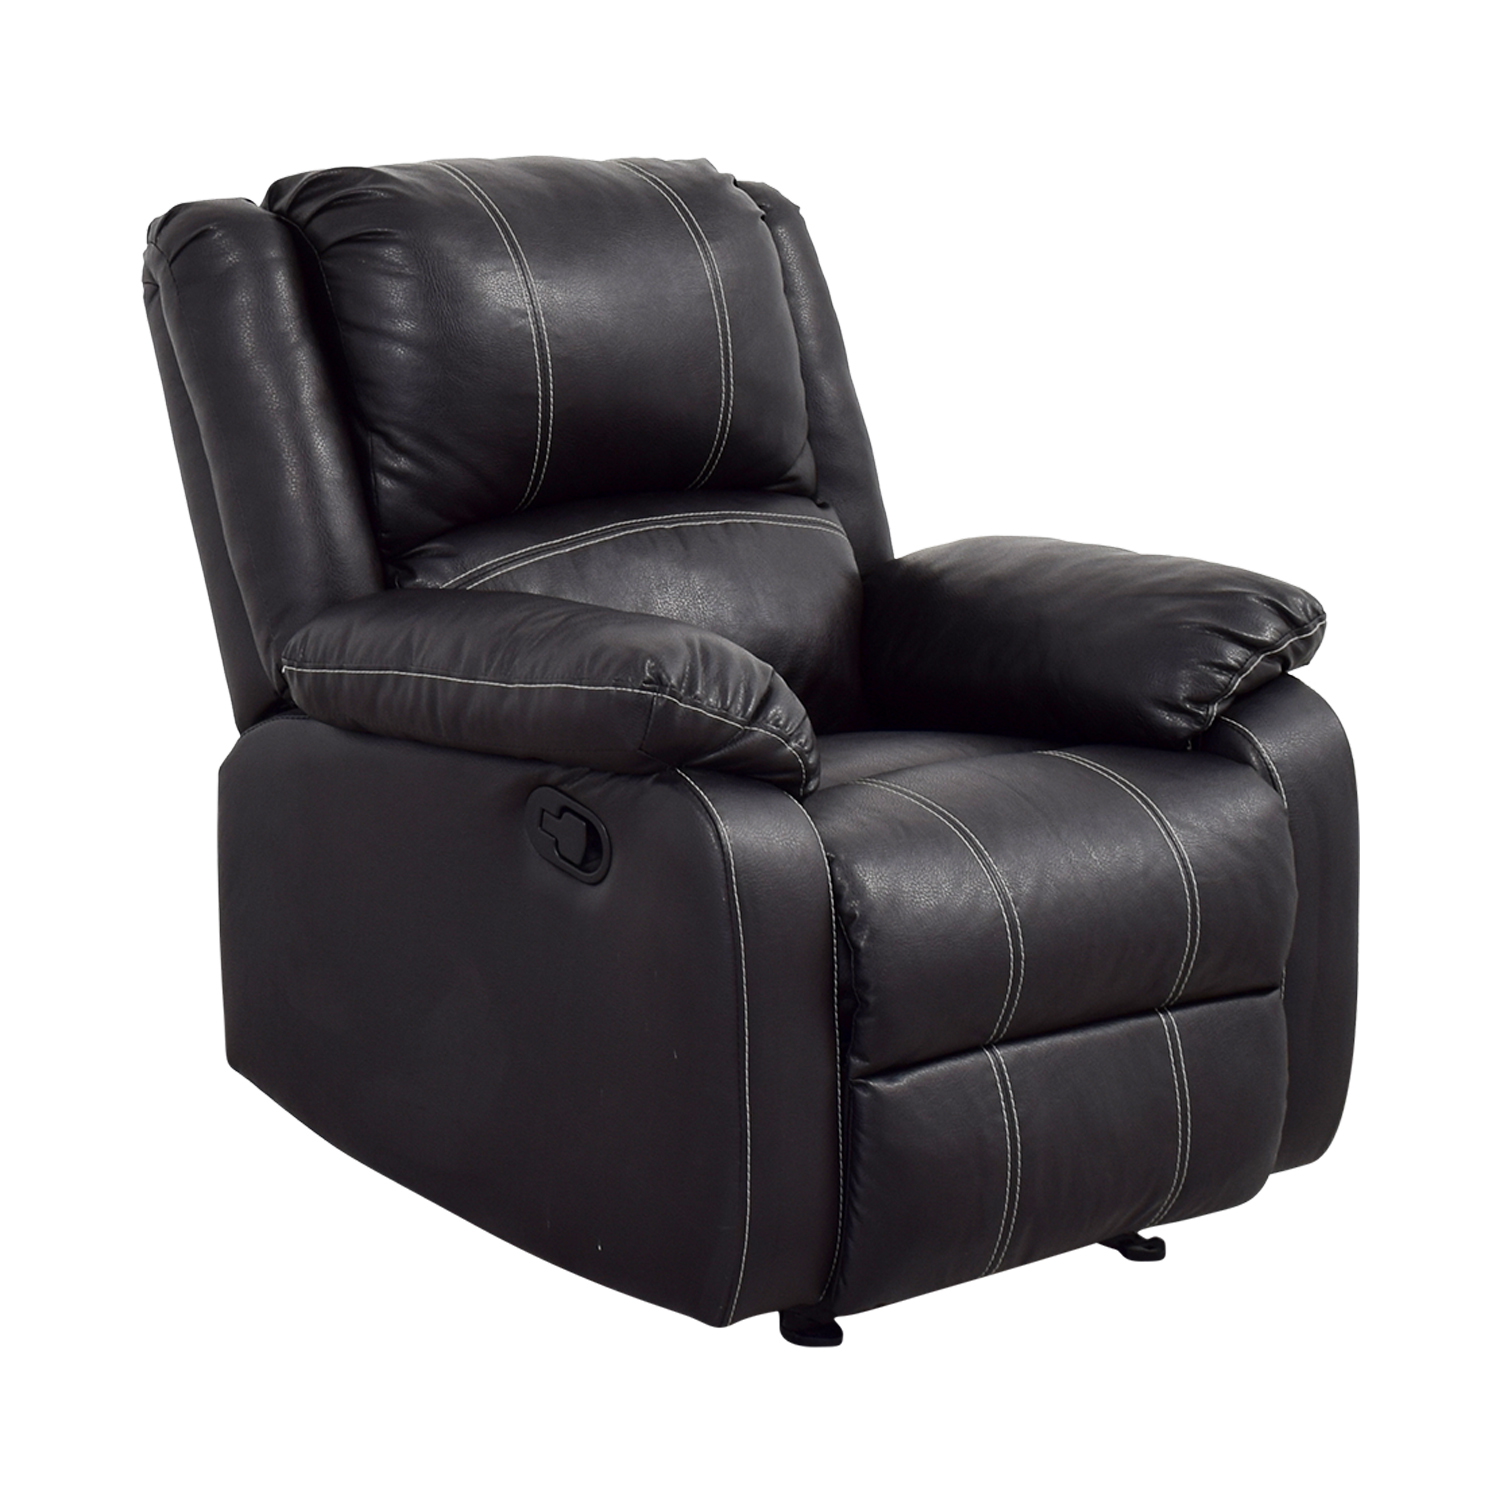 Acme Acme Black Leather Recliner second hand